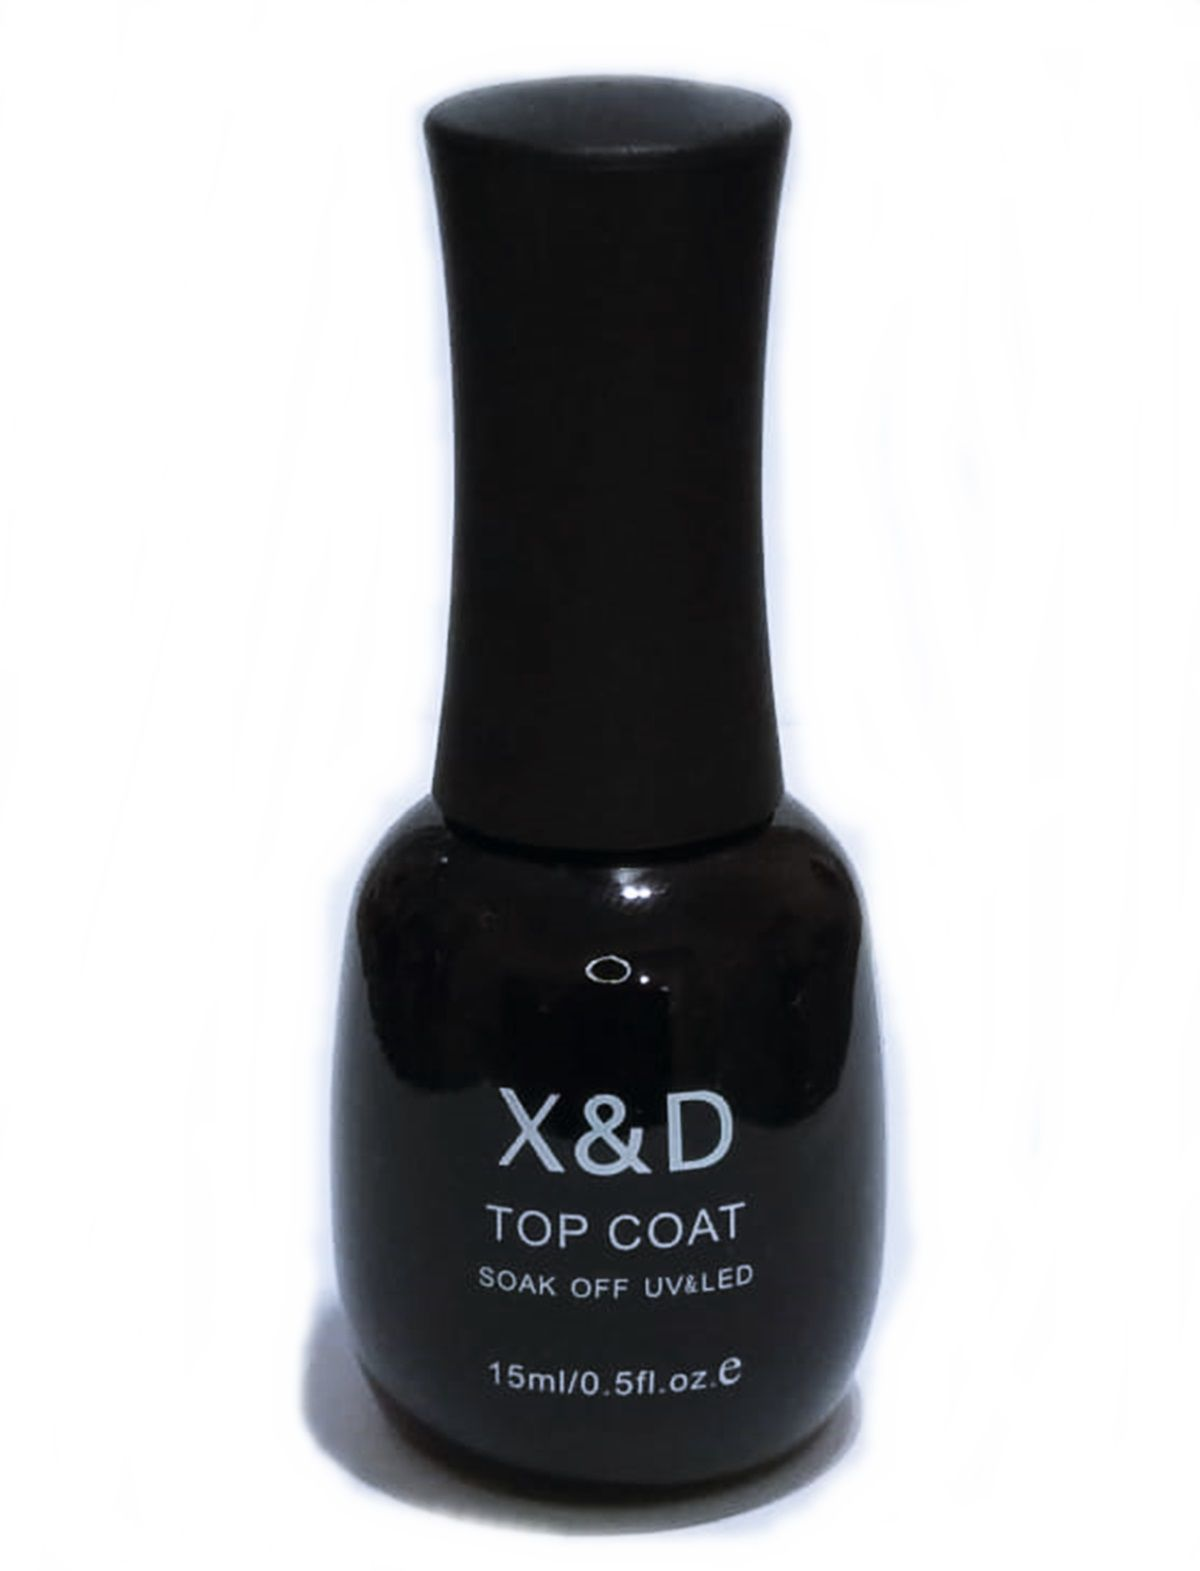 Top Coat Selante Led Uv X&D 15ml Unhas Gel Acrigel